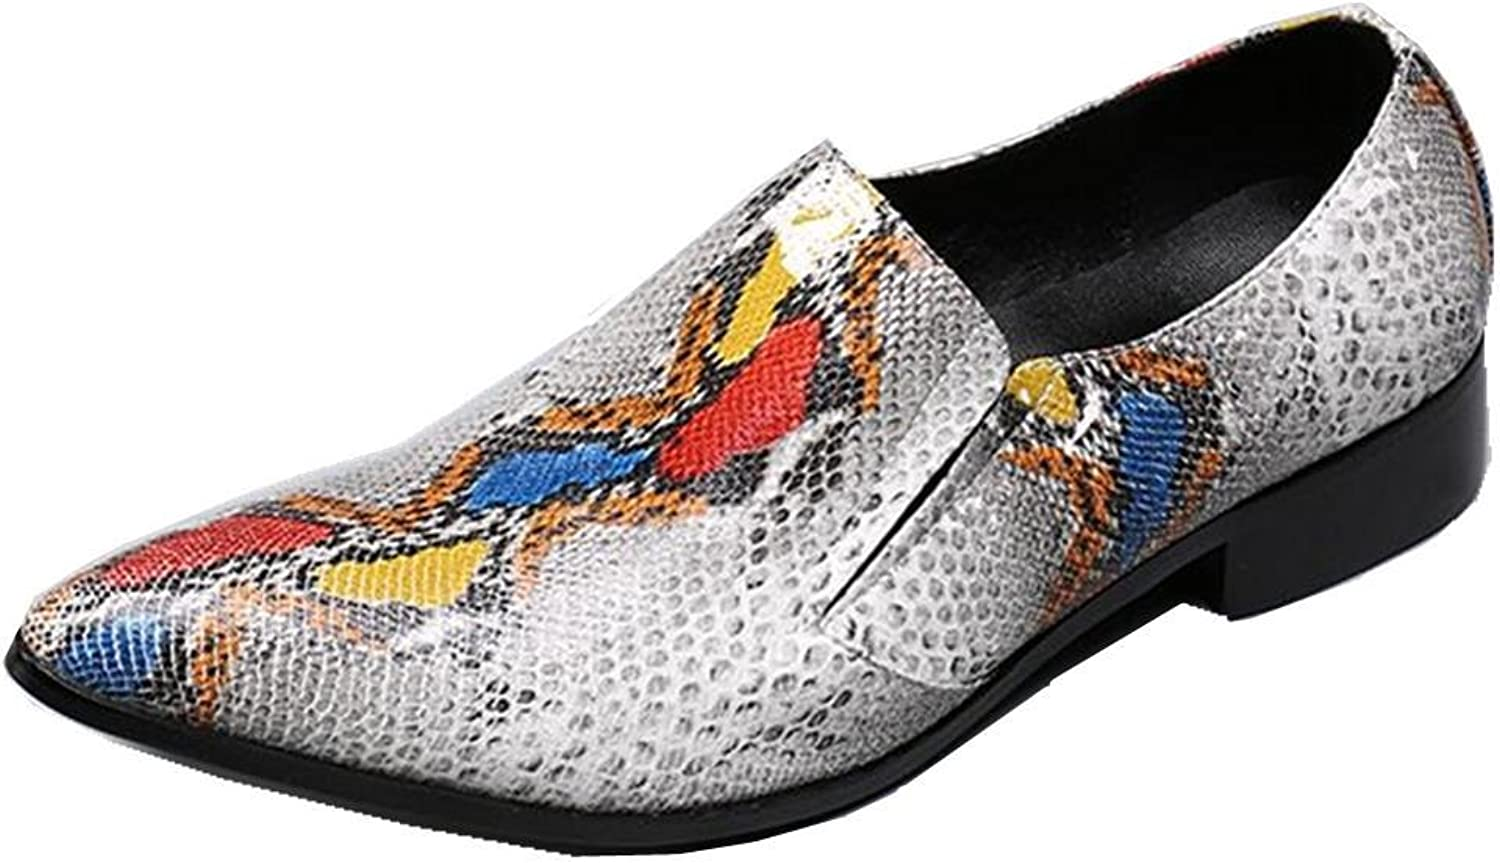 Orfila Men Snake Print Smart Casual Business Formal Leather Dress shoes Size 38 To 45